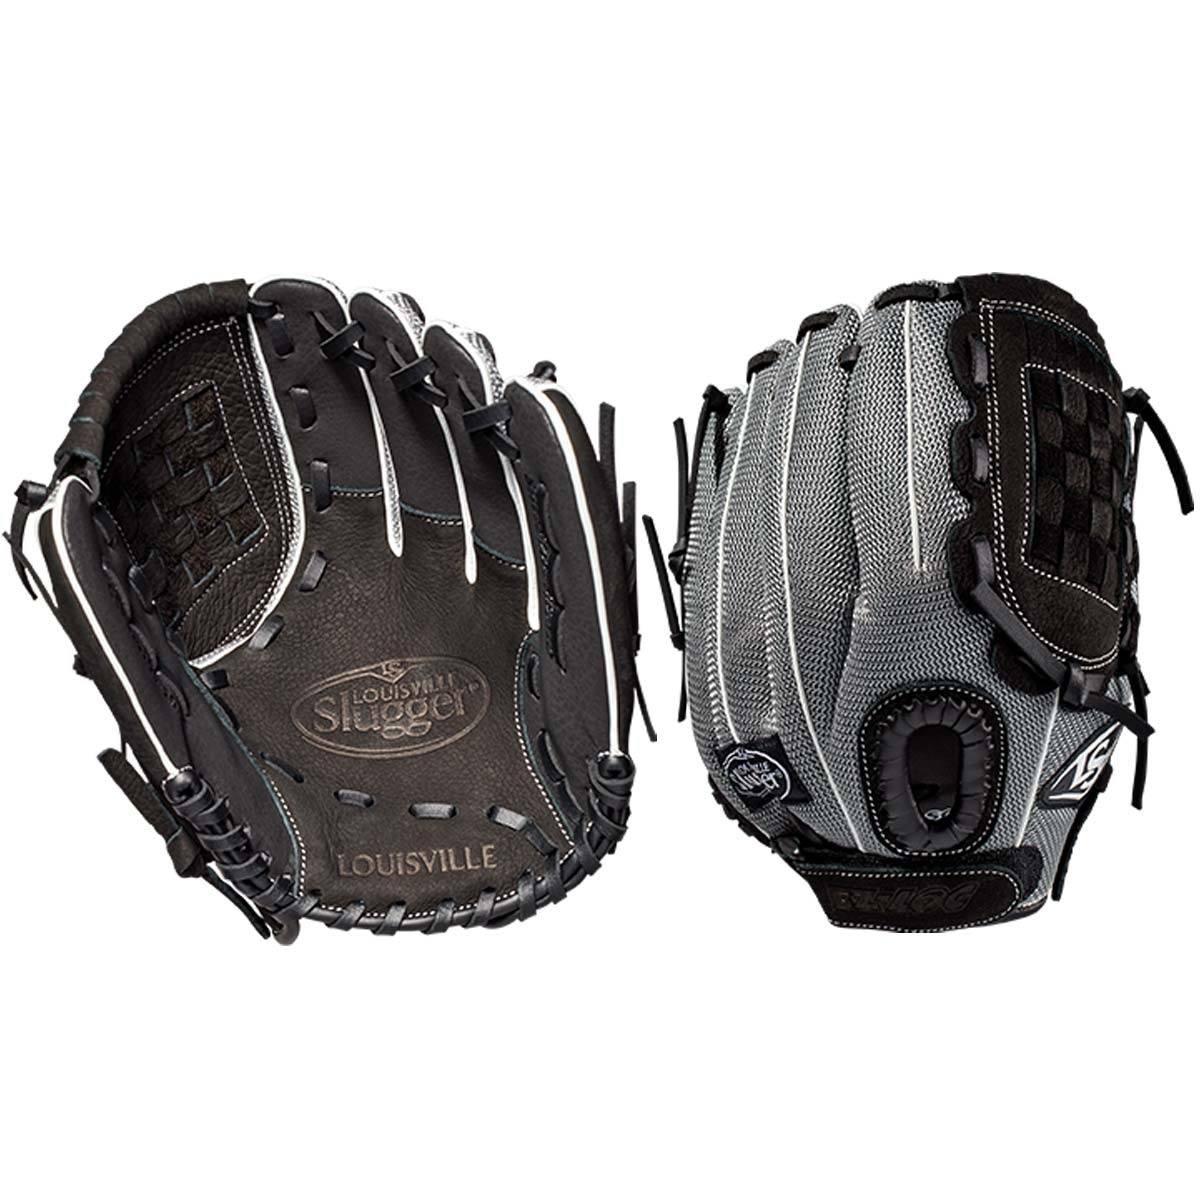 "LGERB19105 Louisville Slugger Genesis 10.5"" Youth Baseball Glove - Regular THUMBNAIL"